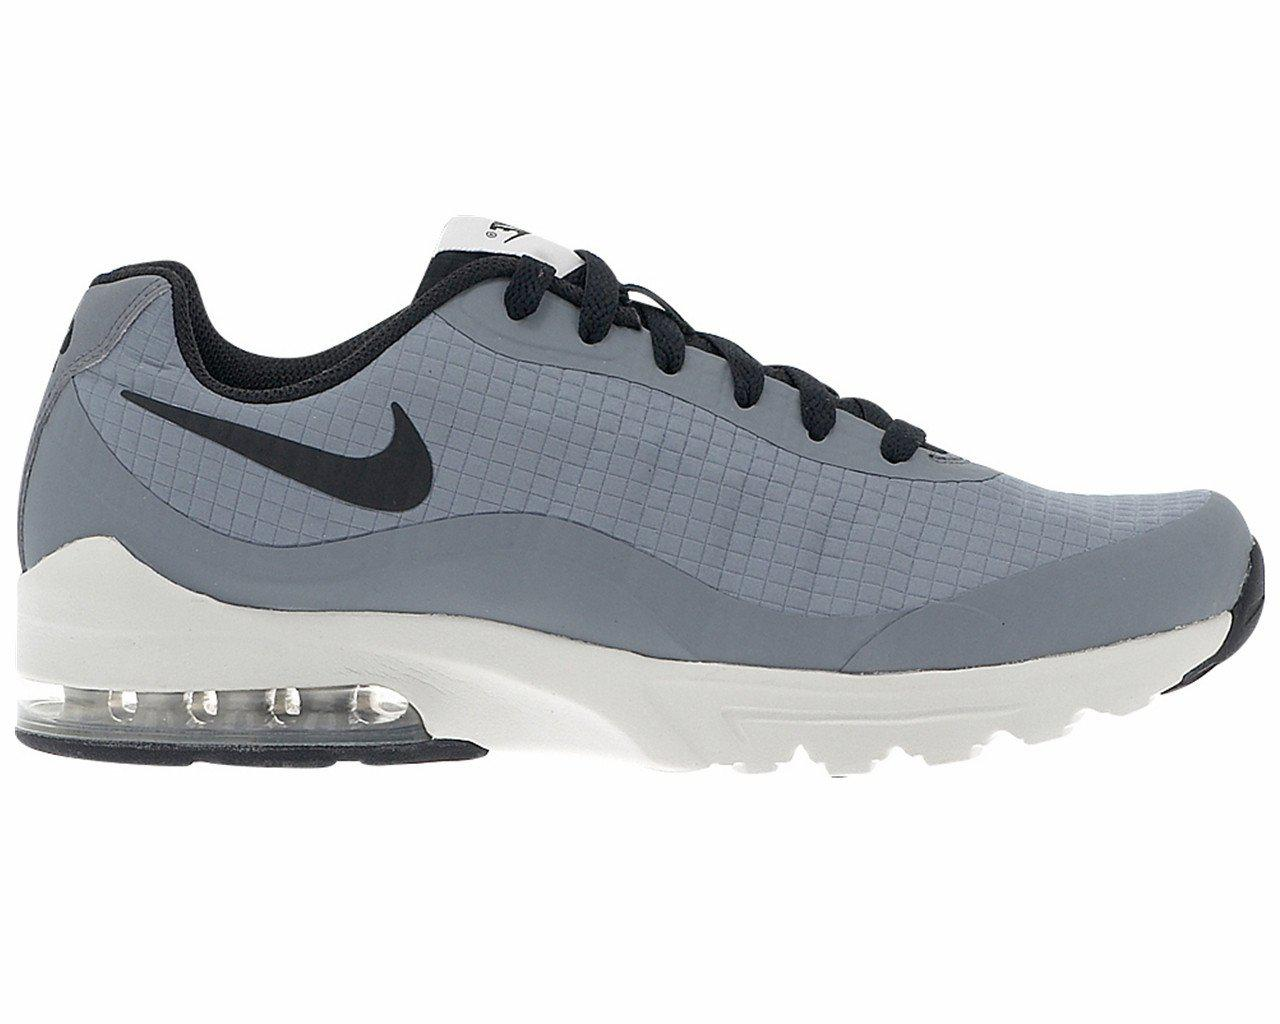 huge selection of 96d8e d67f3 Nike Air Max Invigor Se Cool Grey Trainers in Gray for Men -